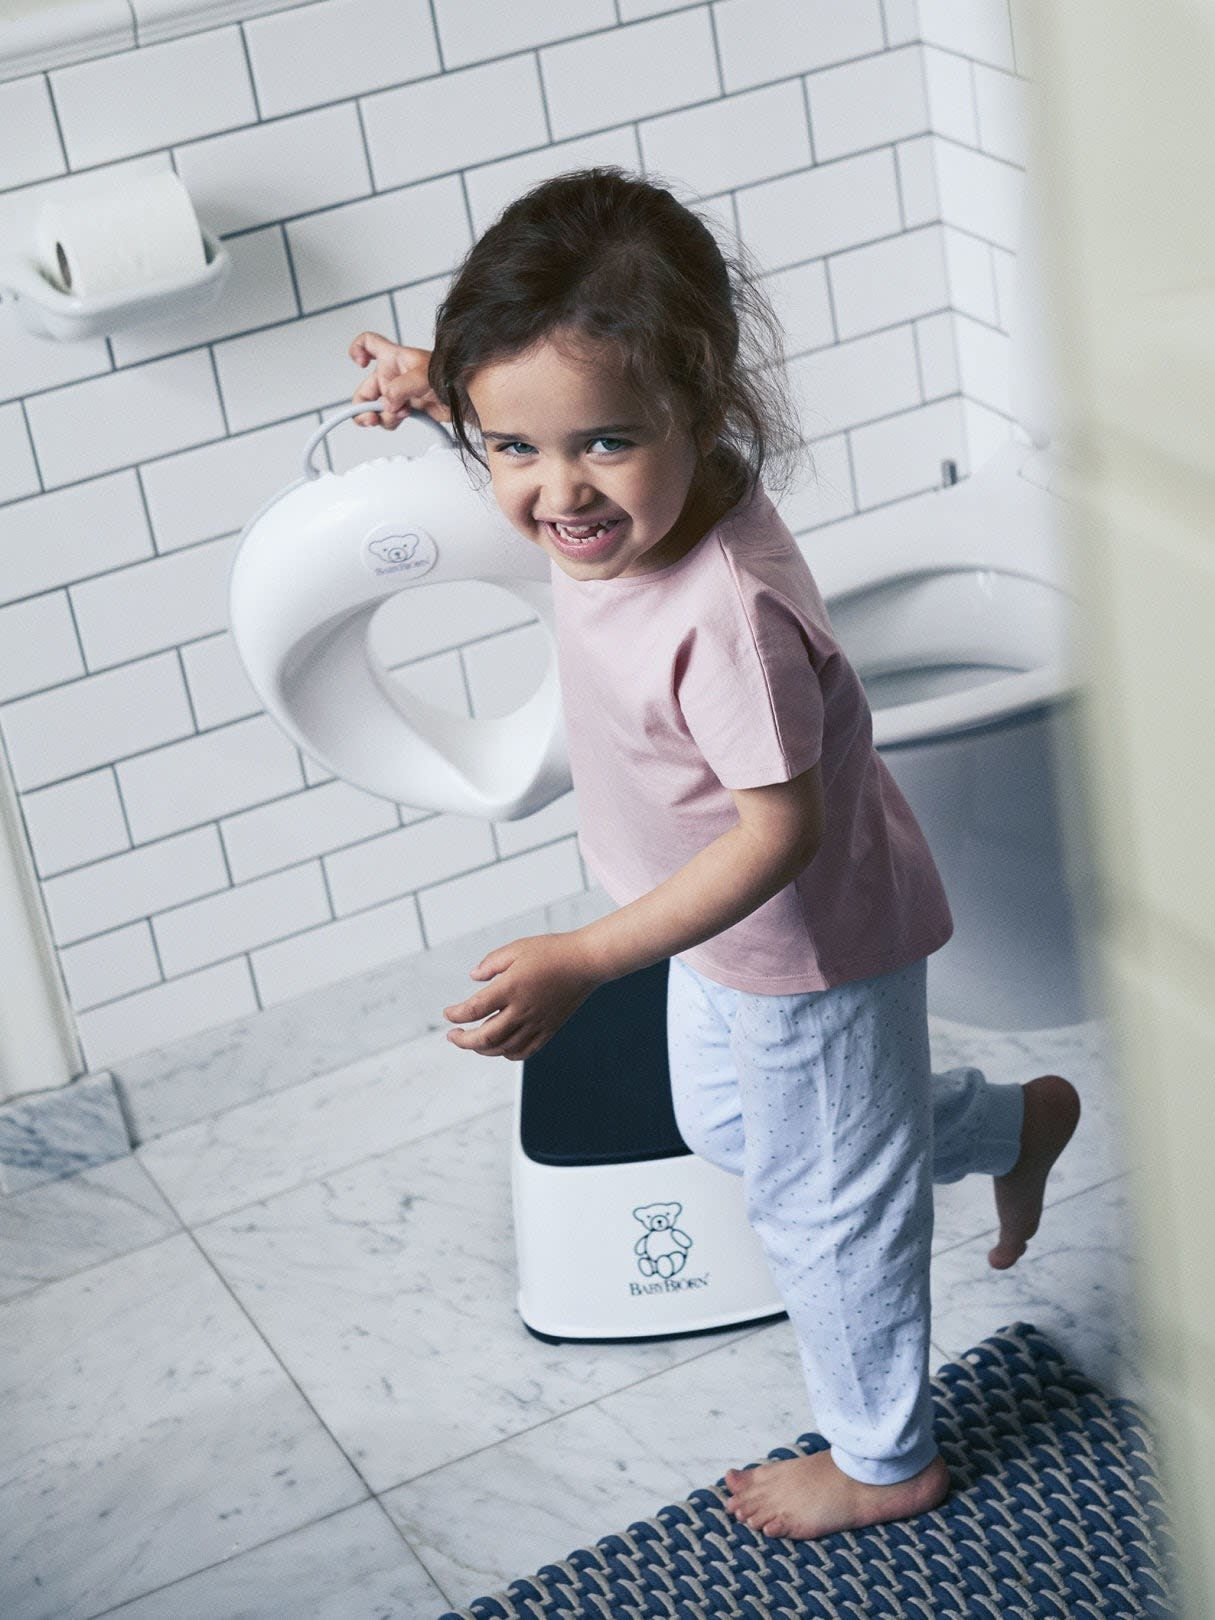 https://cdn.shoplightspeed.com/shops/610953/files/18437788/babybjorn-babybjorn-toilet-trainer-white-grey.jpg